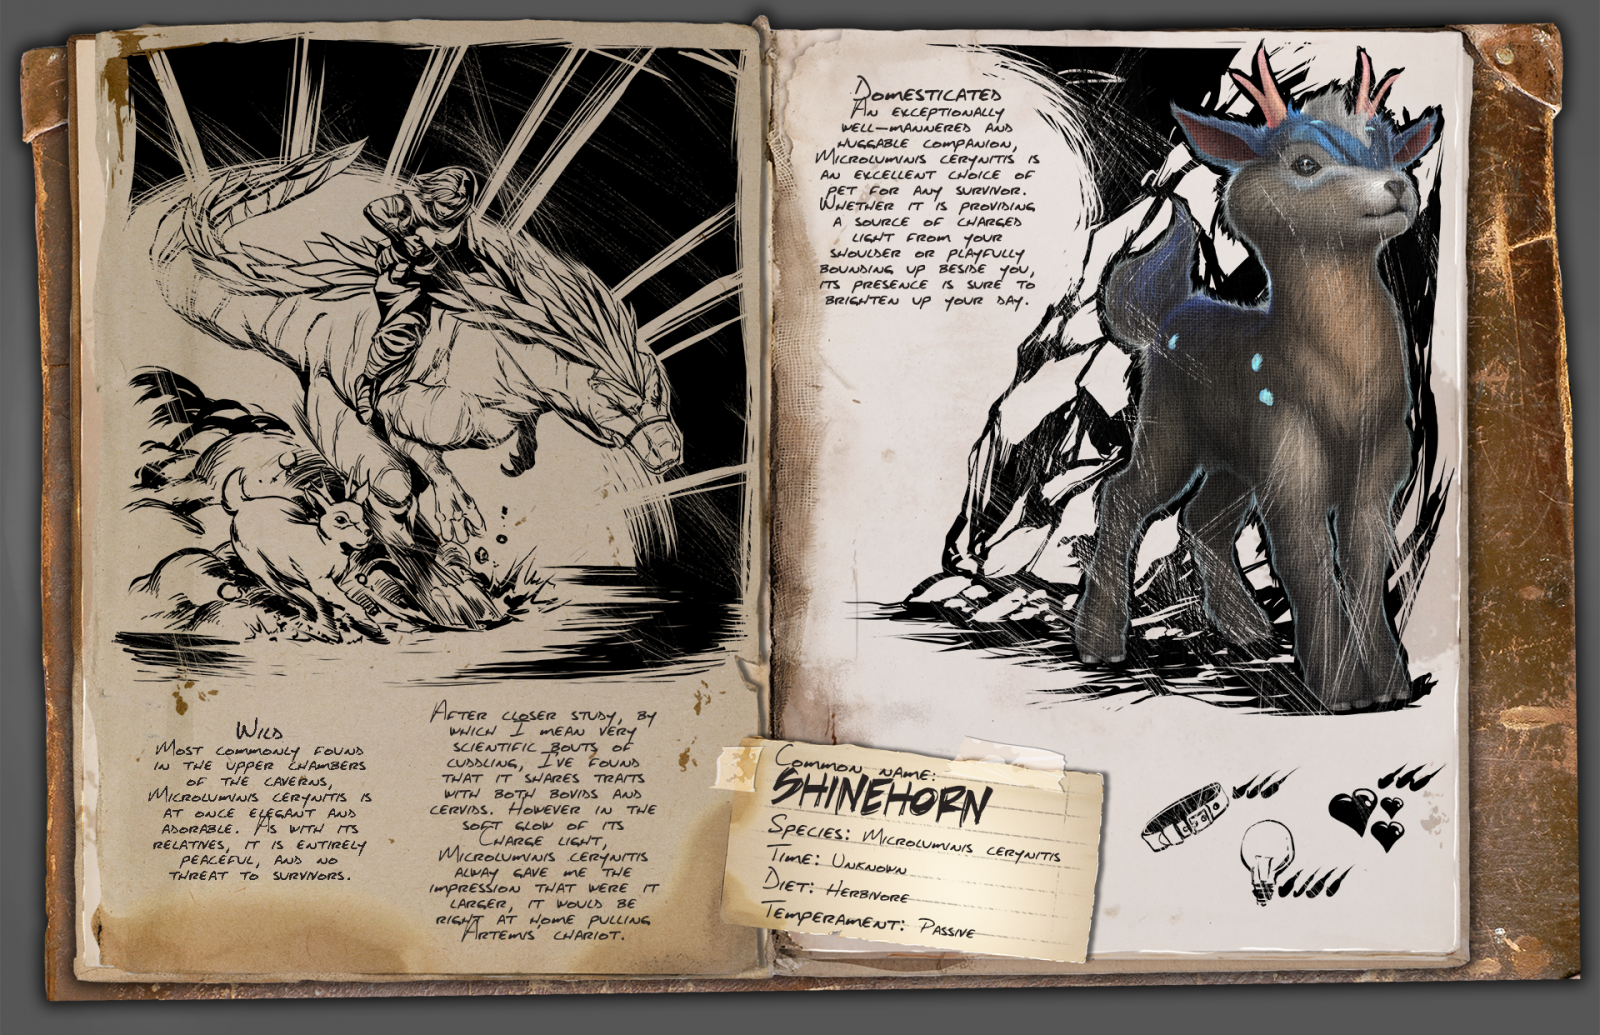 Shinehorn From Ark Aberration Mythological Animals Ark